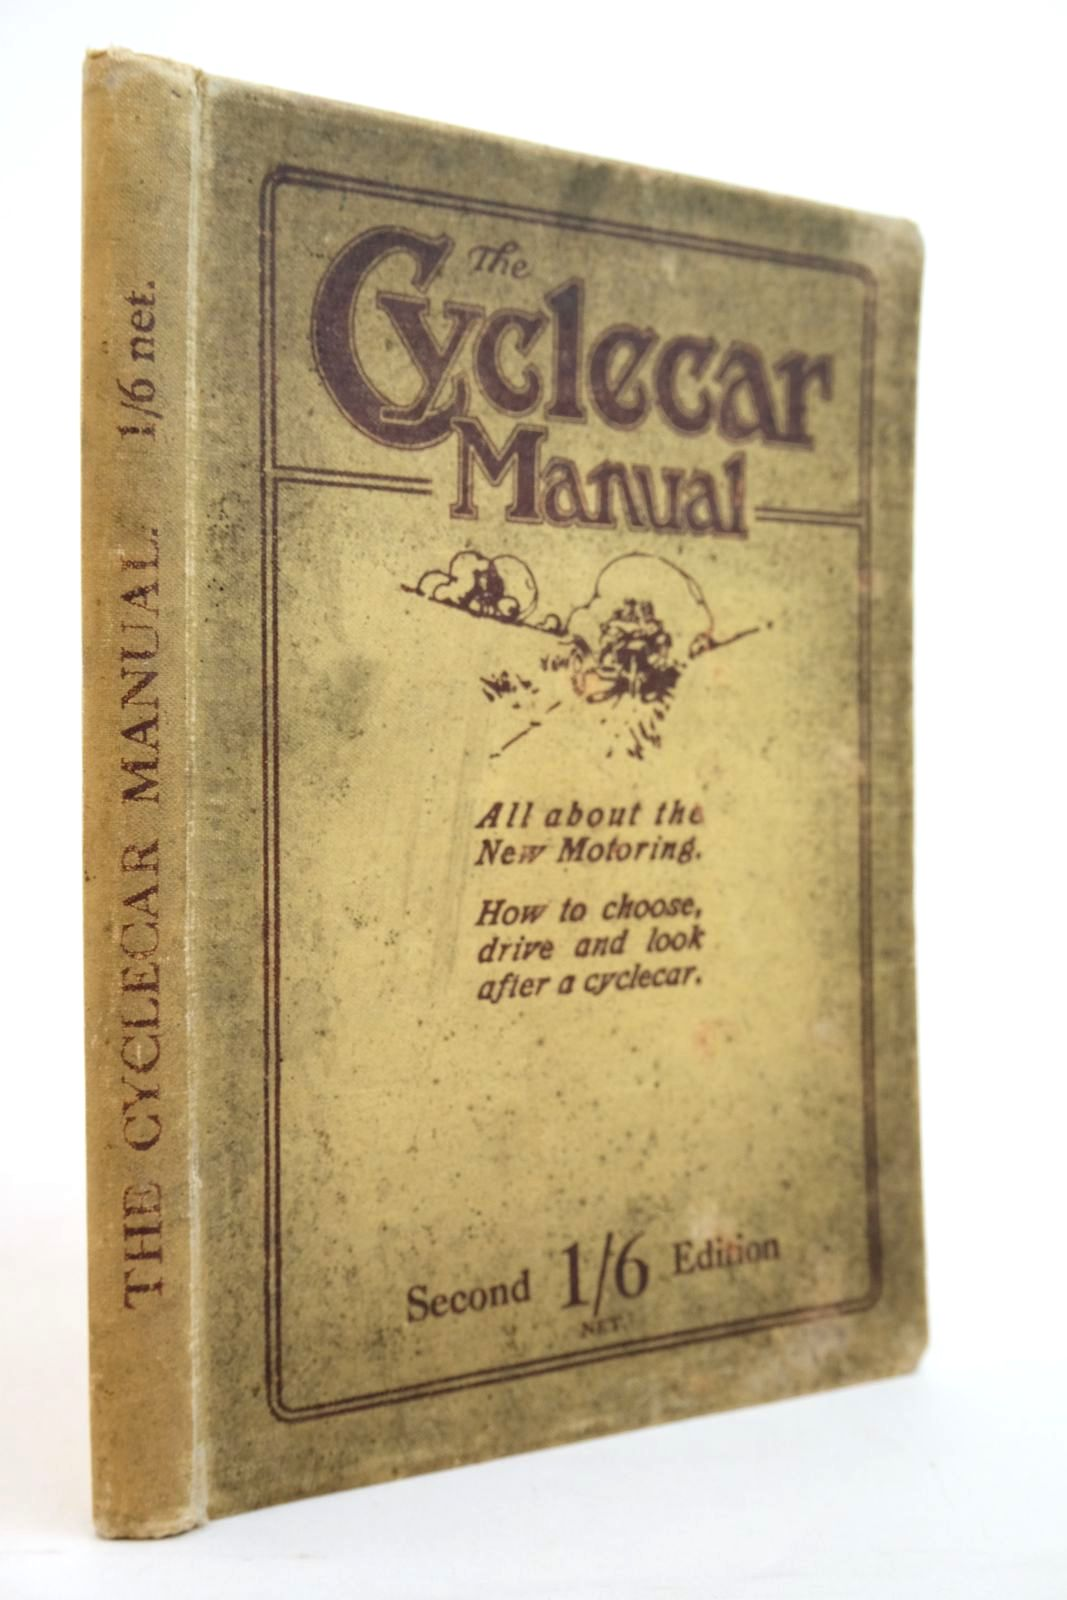 Photo of THE CYCLECAR MANUAL published by Temple Press Limited (STOCK CODE: 2134567)  for sale by Stella & Rose's Books